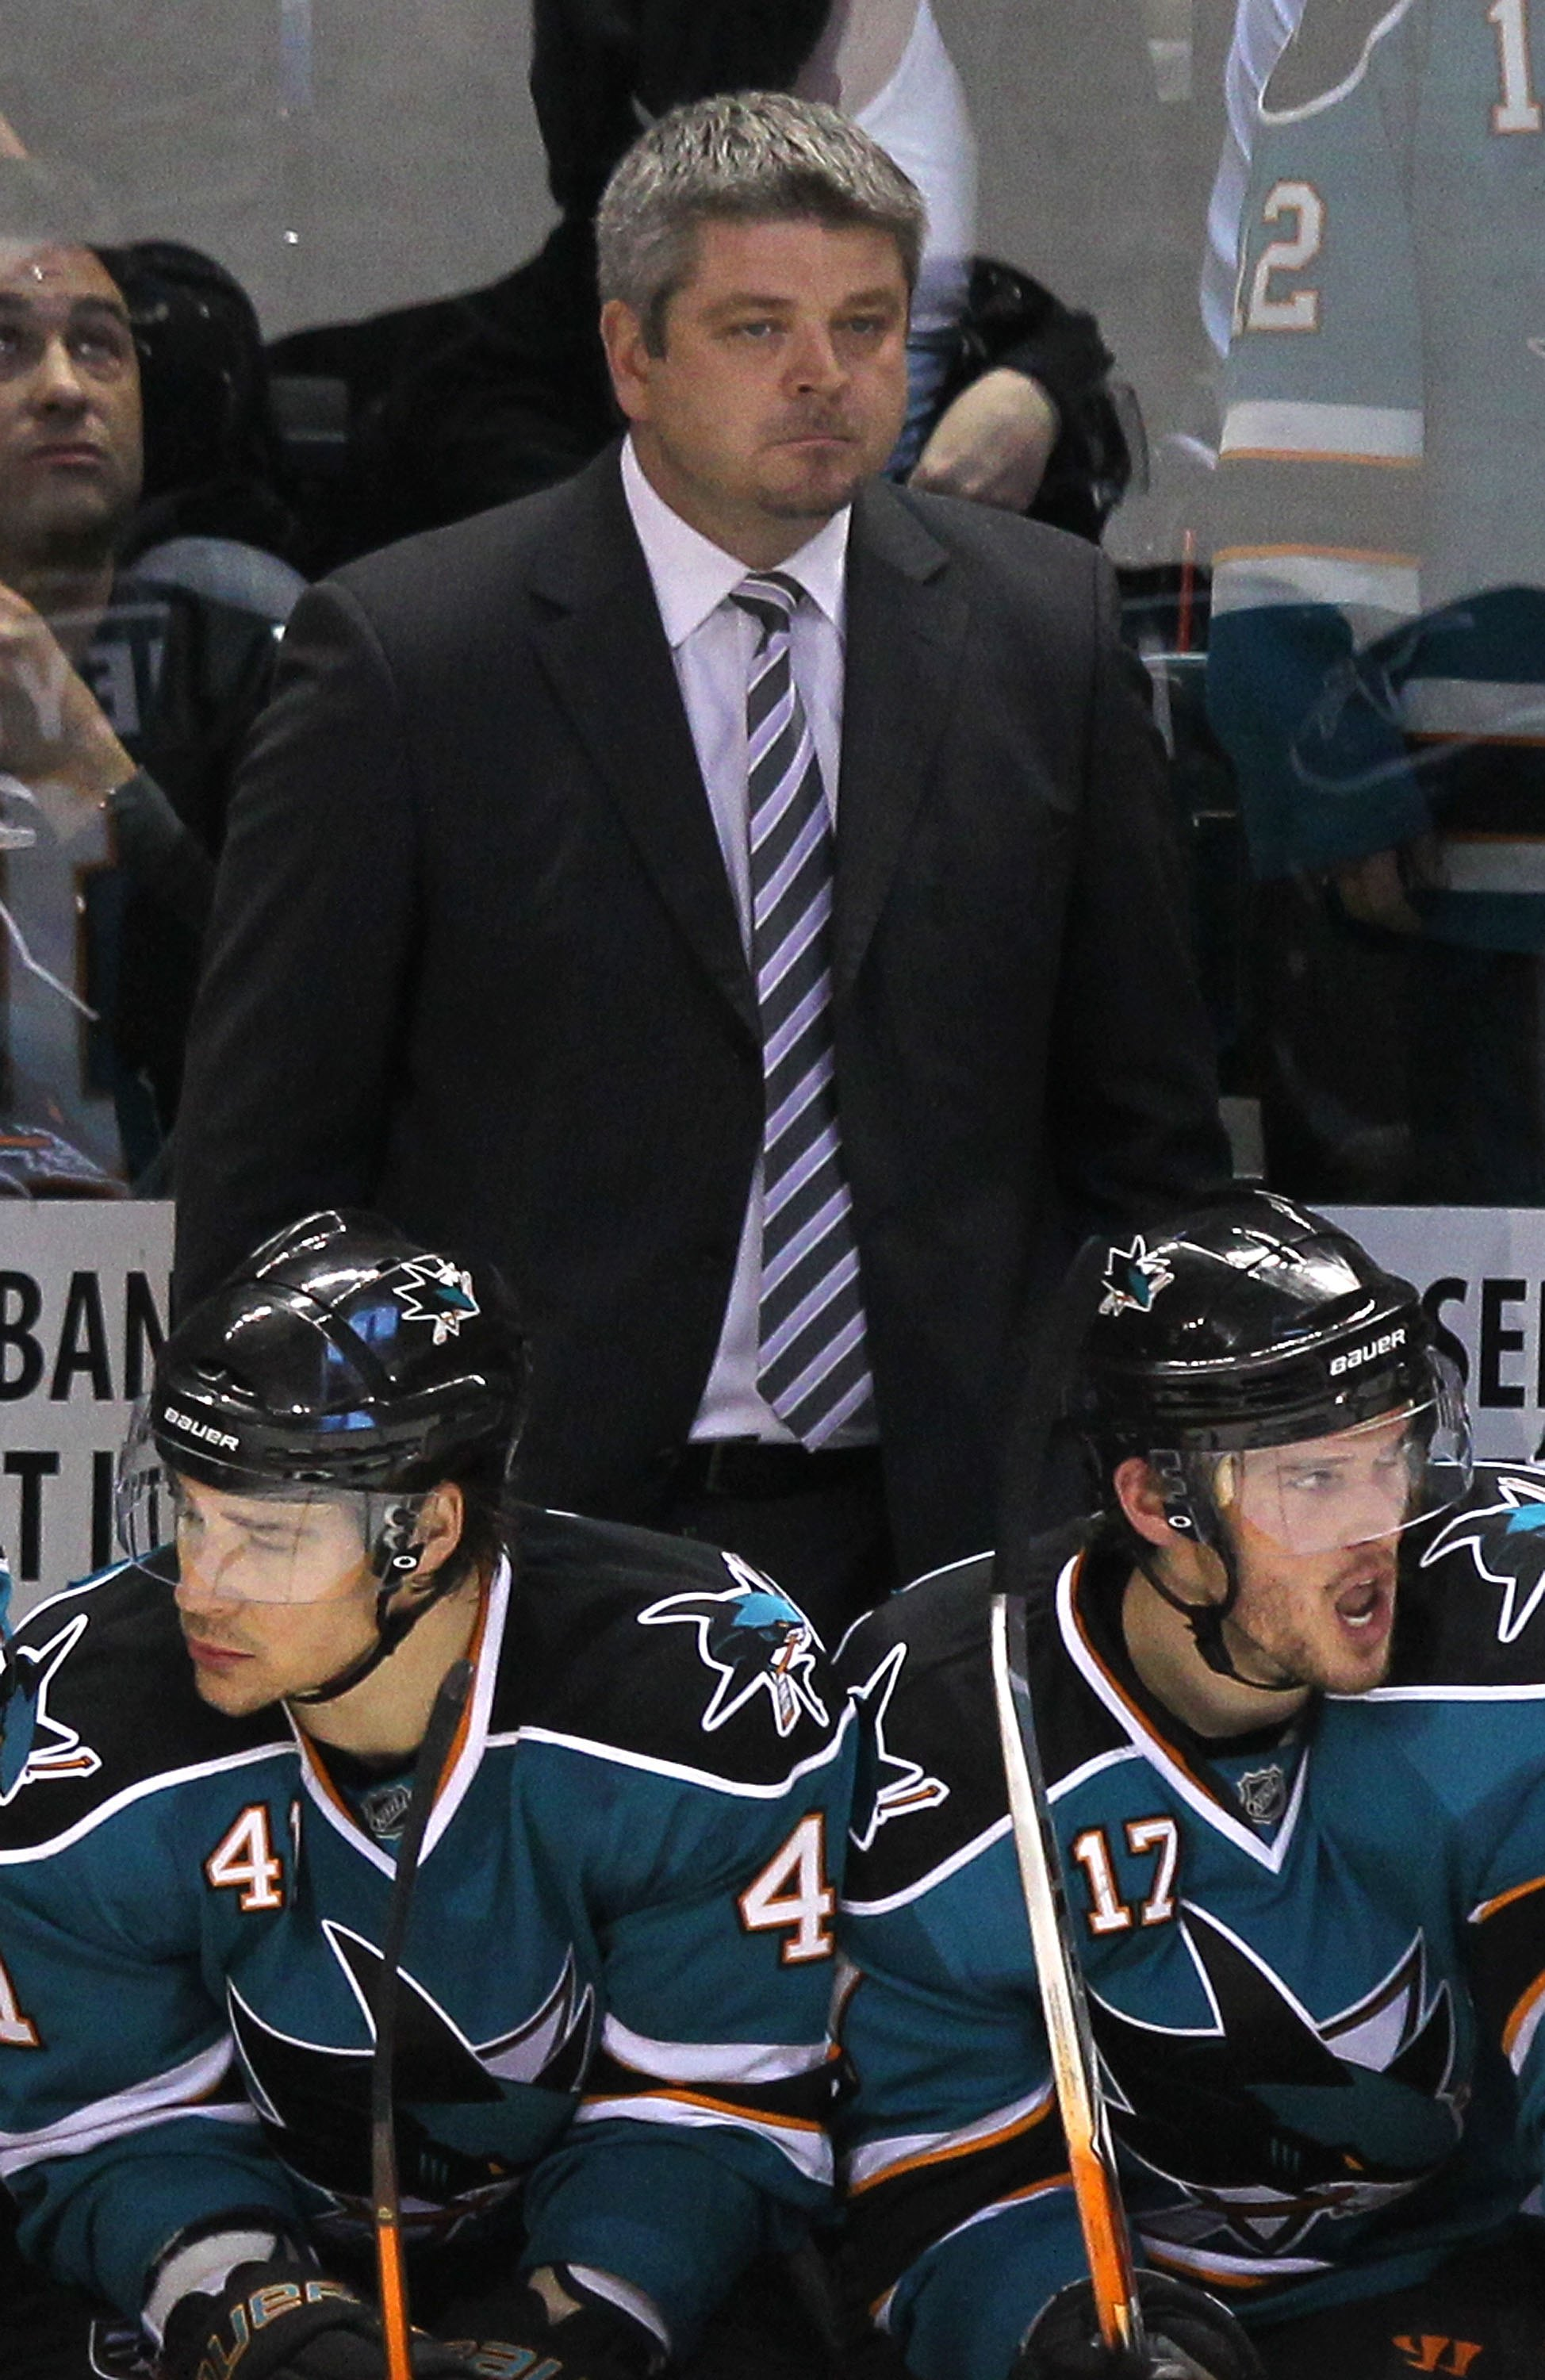 c024f5bf0e5 Todd McLellan was hired as Head Coach of the San Jose Sharks on June 11,